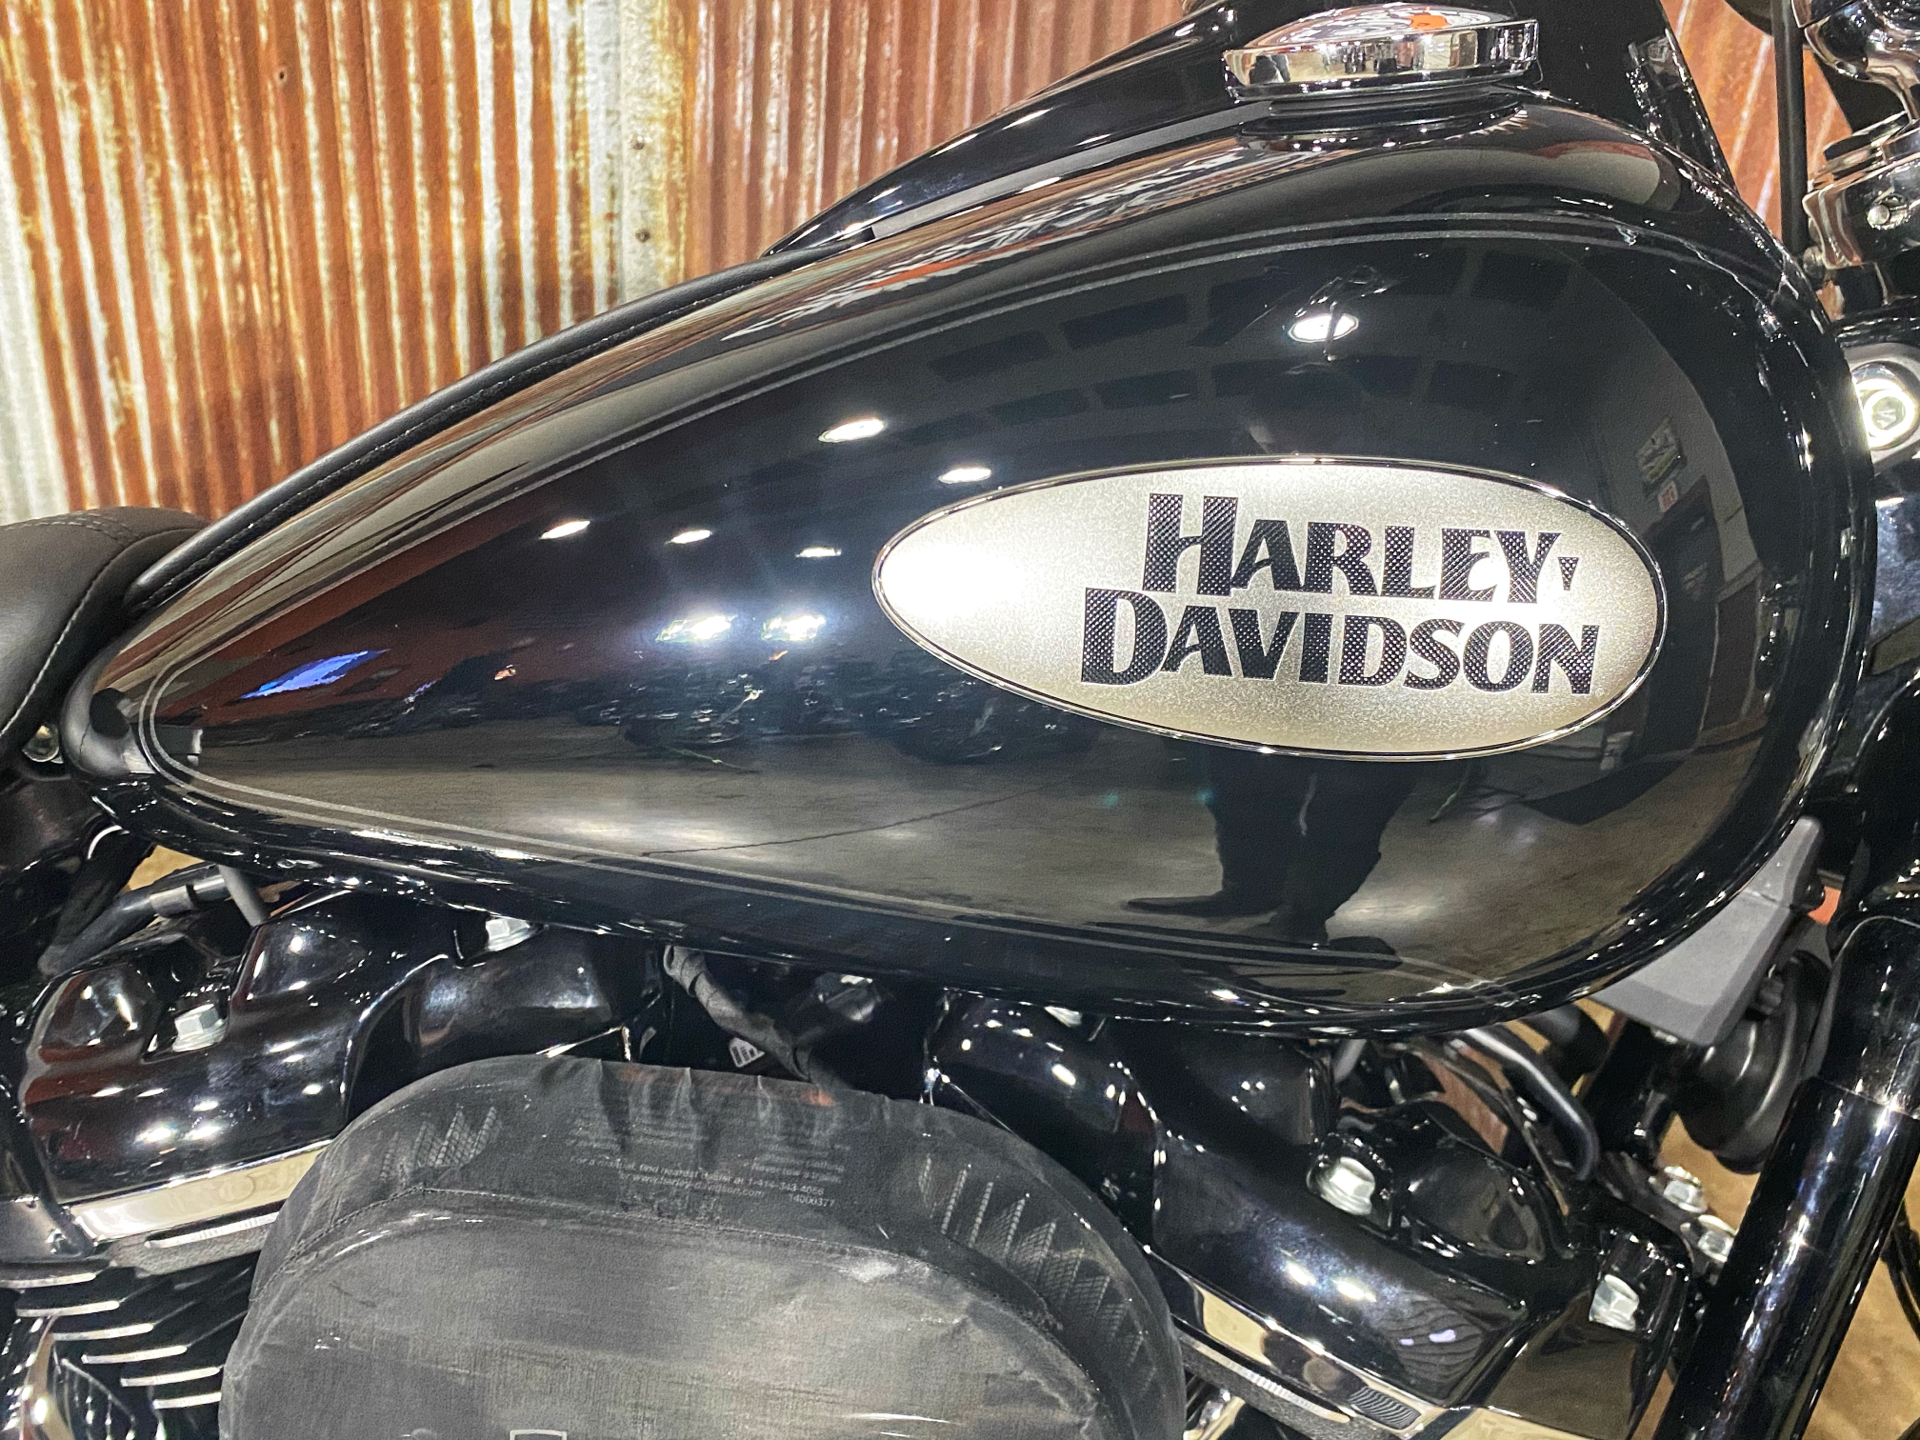 2021 Harley-Davidson Heritage Classic 114 in Chippewa Falls, Wisconsin - Photo 10